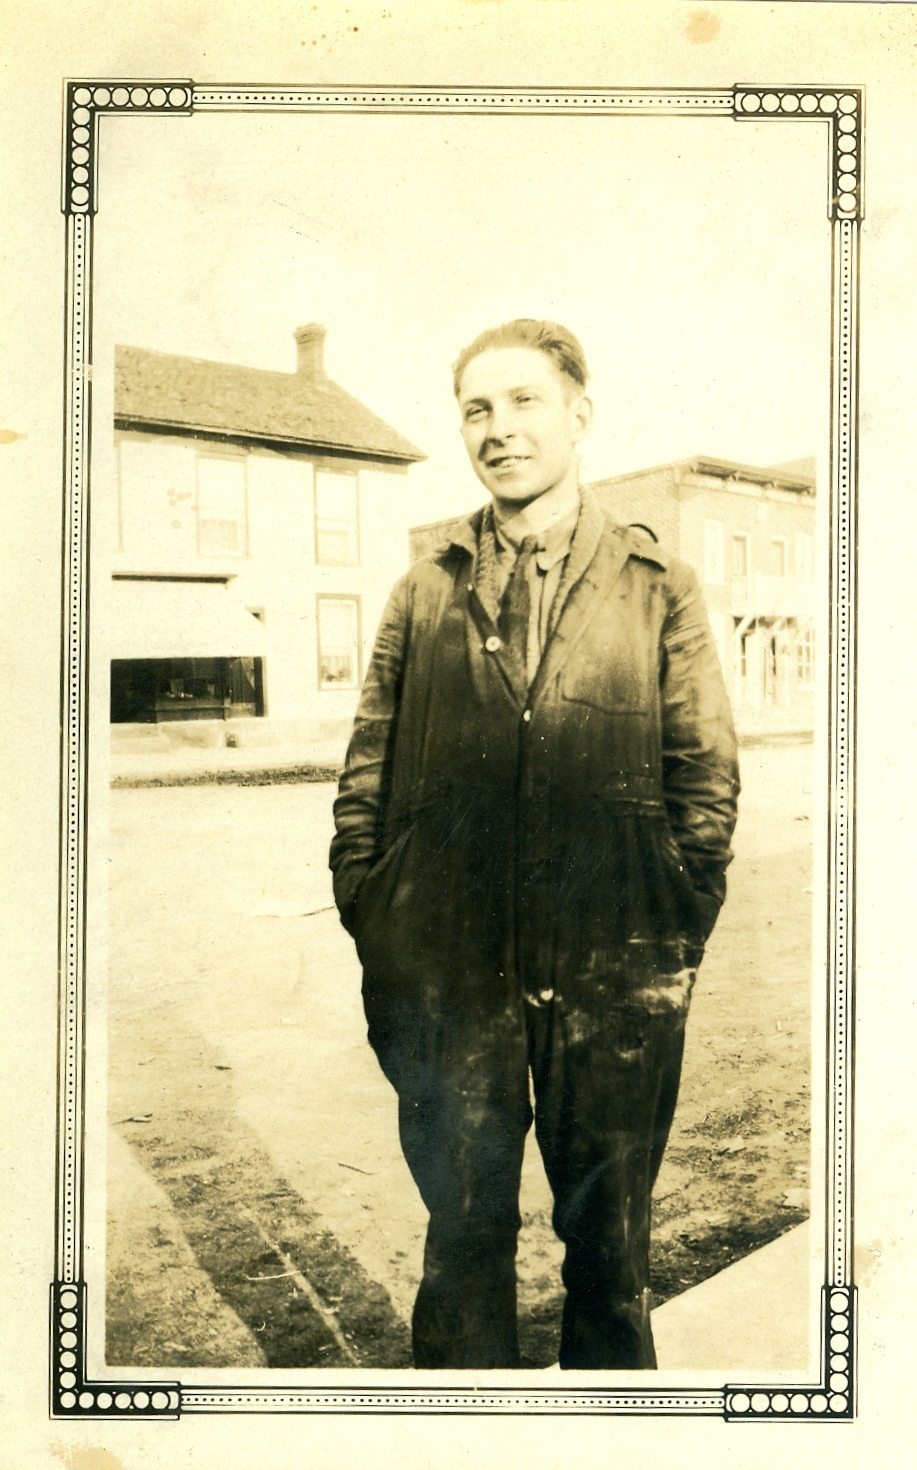 Geprge Forestell, 1930 =Cook's barber ship i background   Pat Anne:  The picture above I believe it is my Uncle Lorne Forestell. It does not look like my Grandfather.